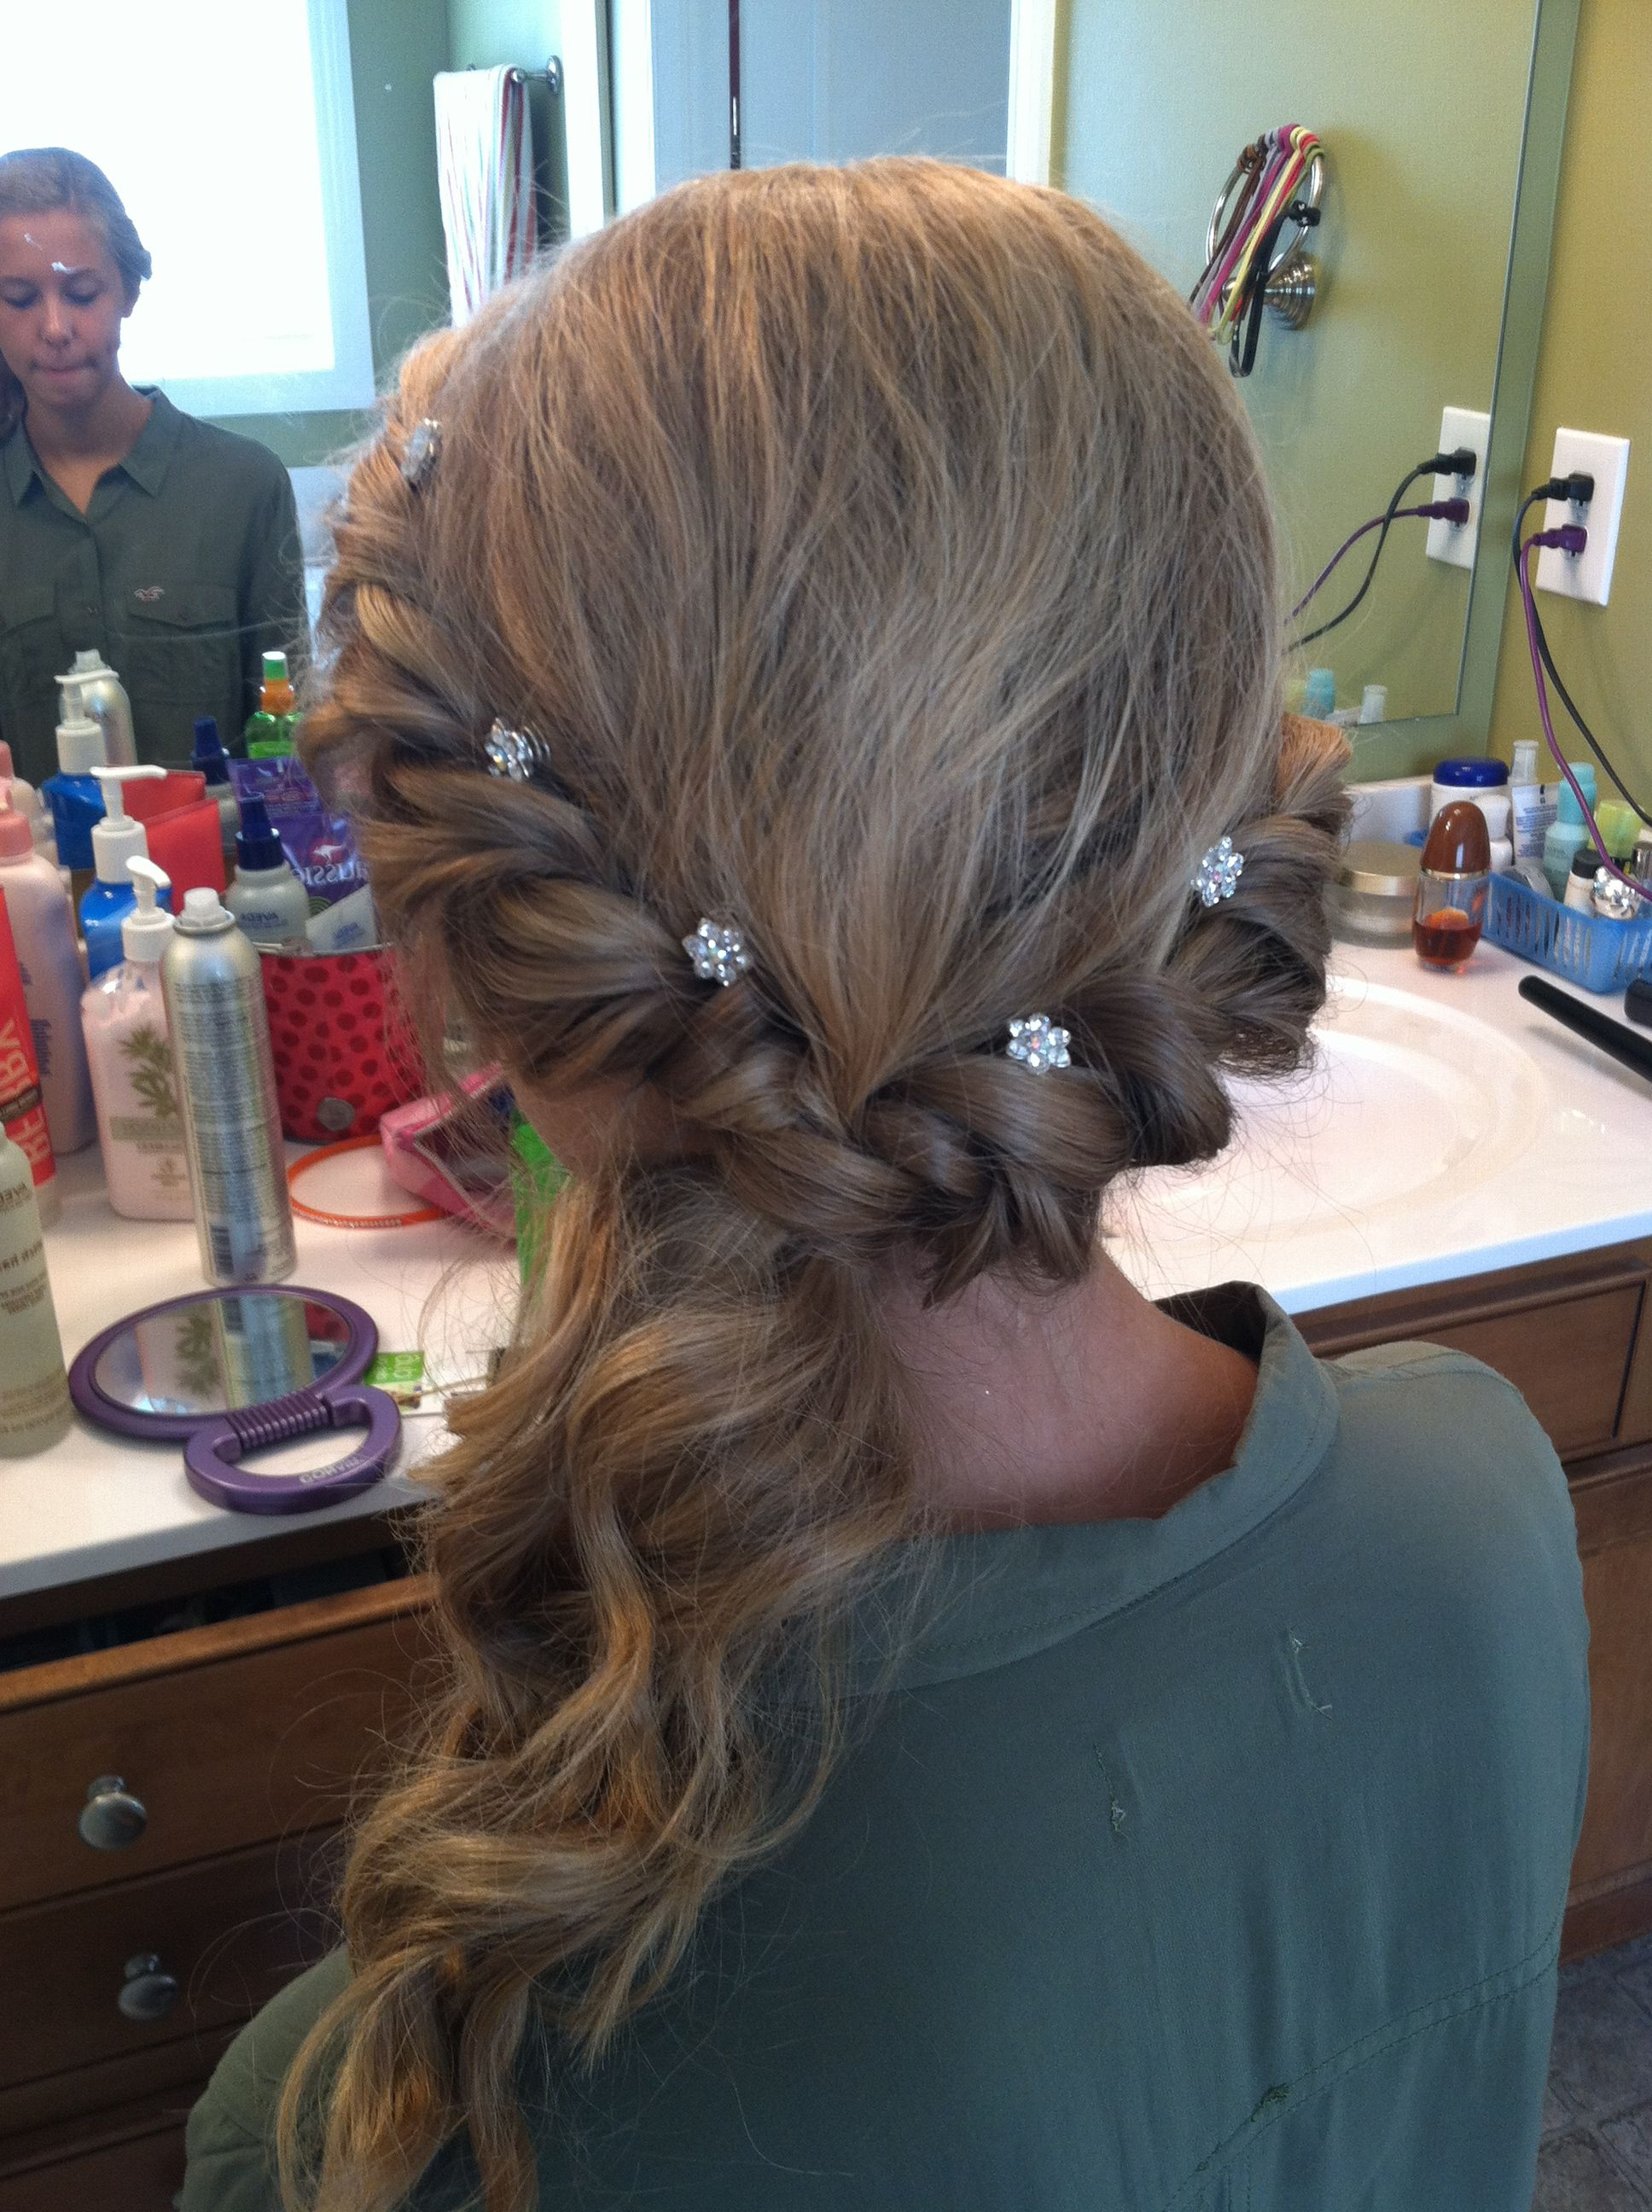 Recent Elegant Braid Side Ponytail Hairstyles With Simple But Elegant Prom Twist And Pulled To The Side W/ Curls (View 10 of 20)